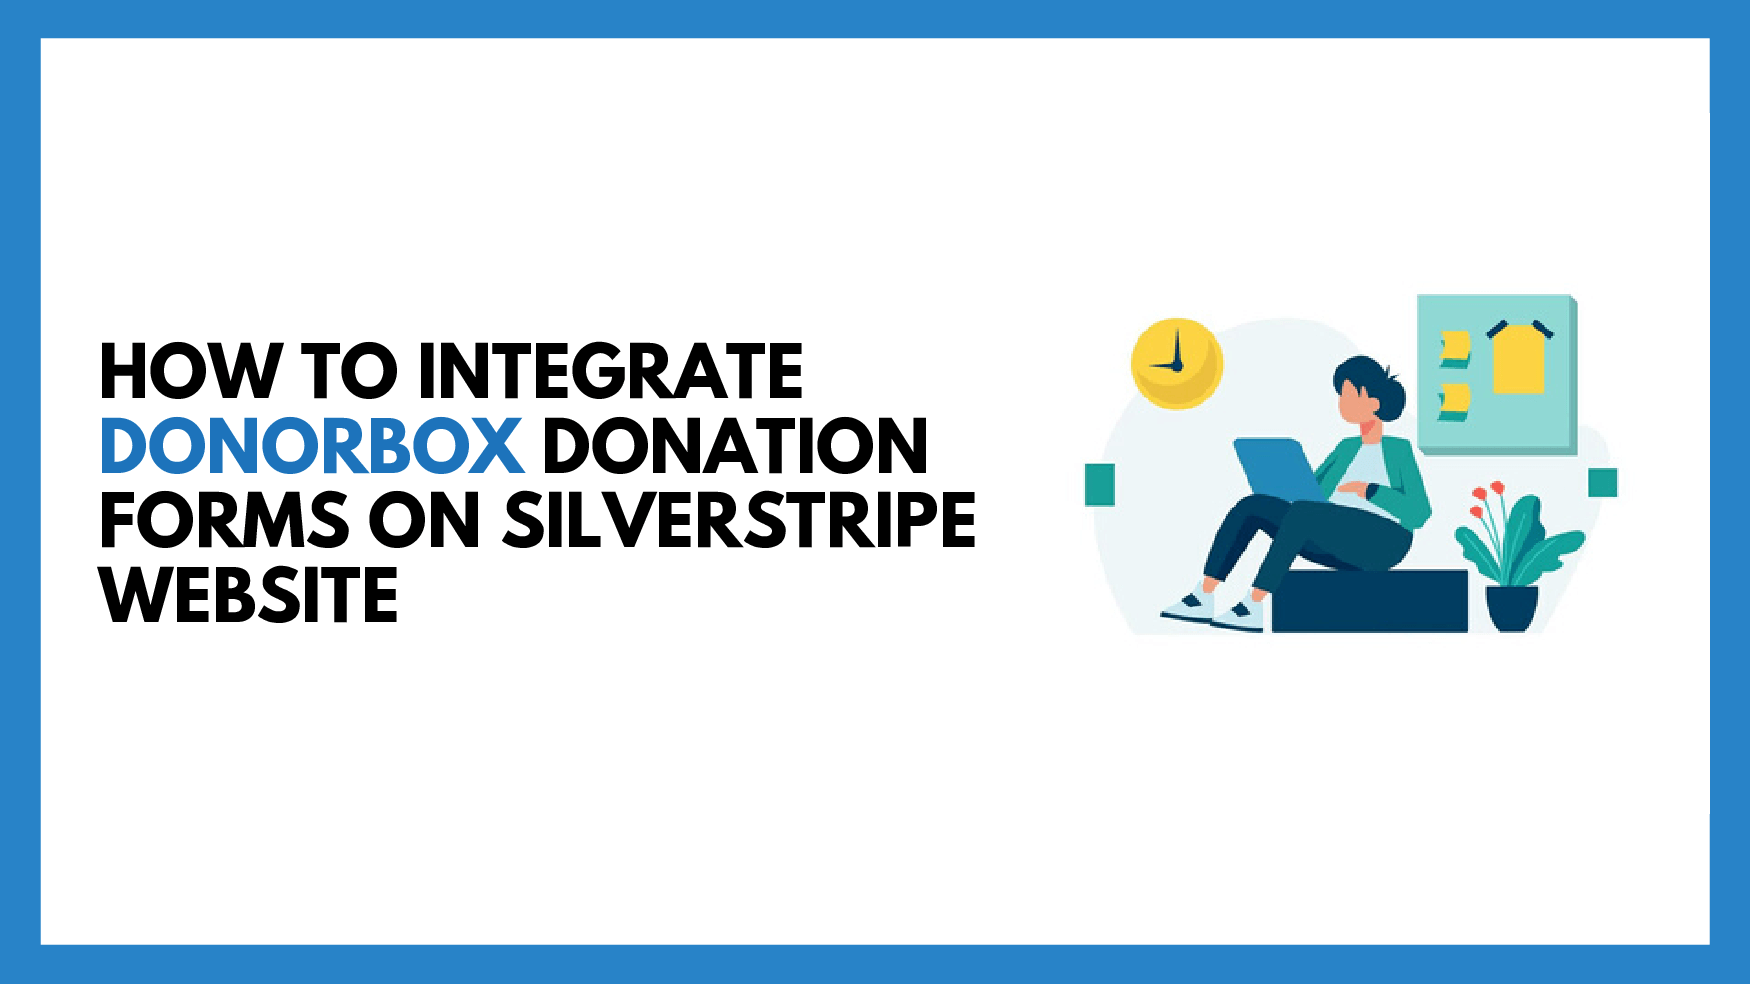 How To Integrate Donorbox Donation Forms On SilverStripe Website